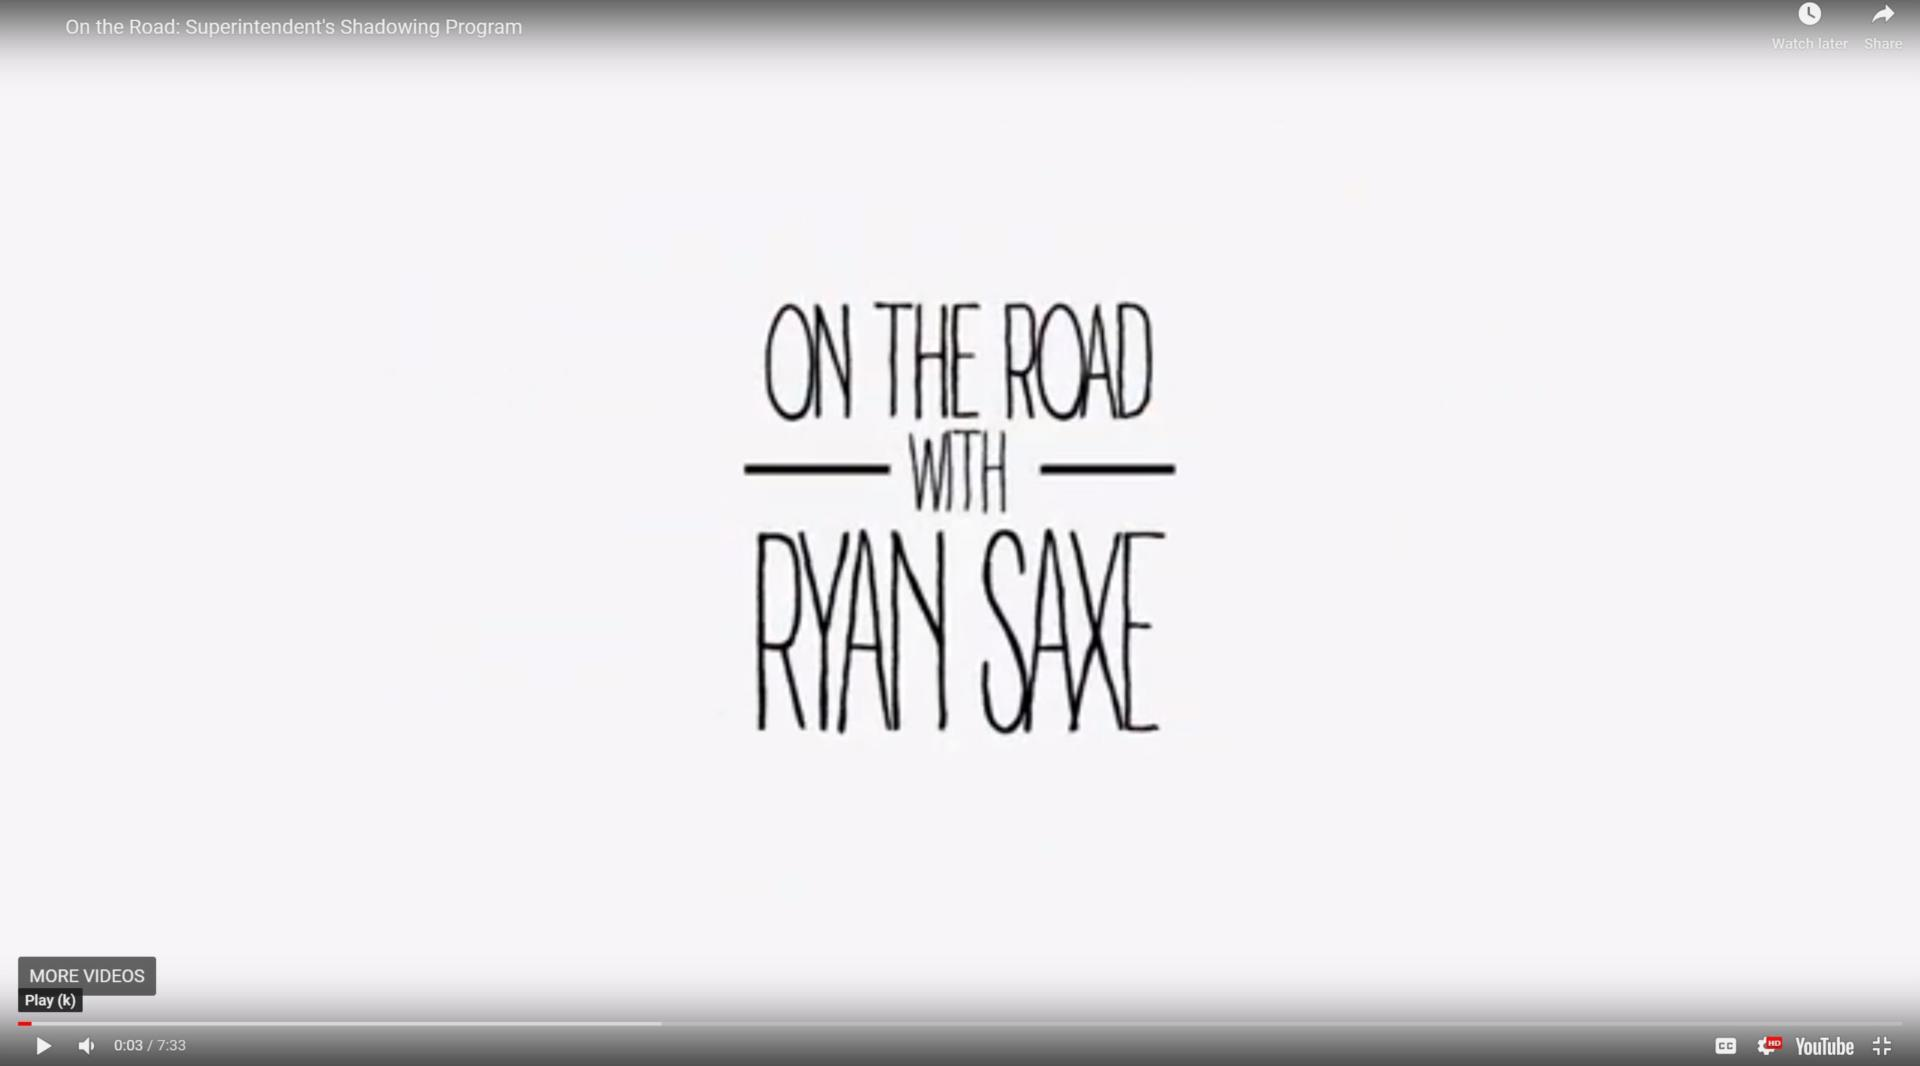 Link to On The Road Video Series